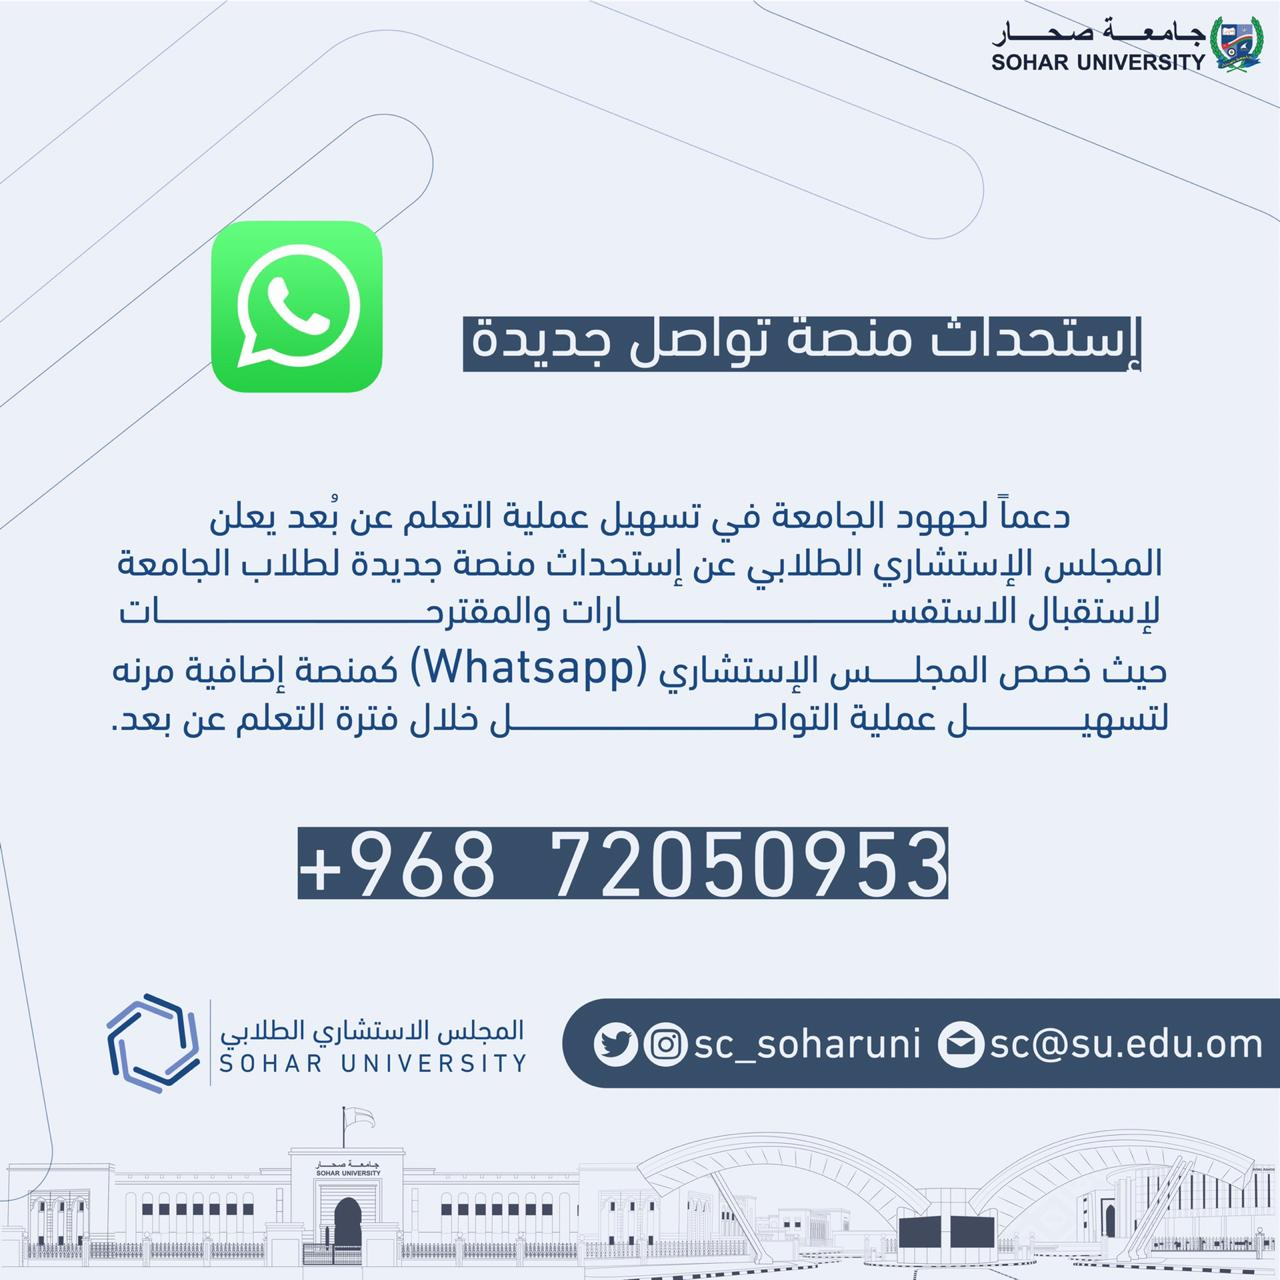 Student Advisory Council - whatsapp